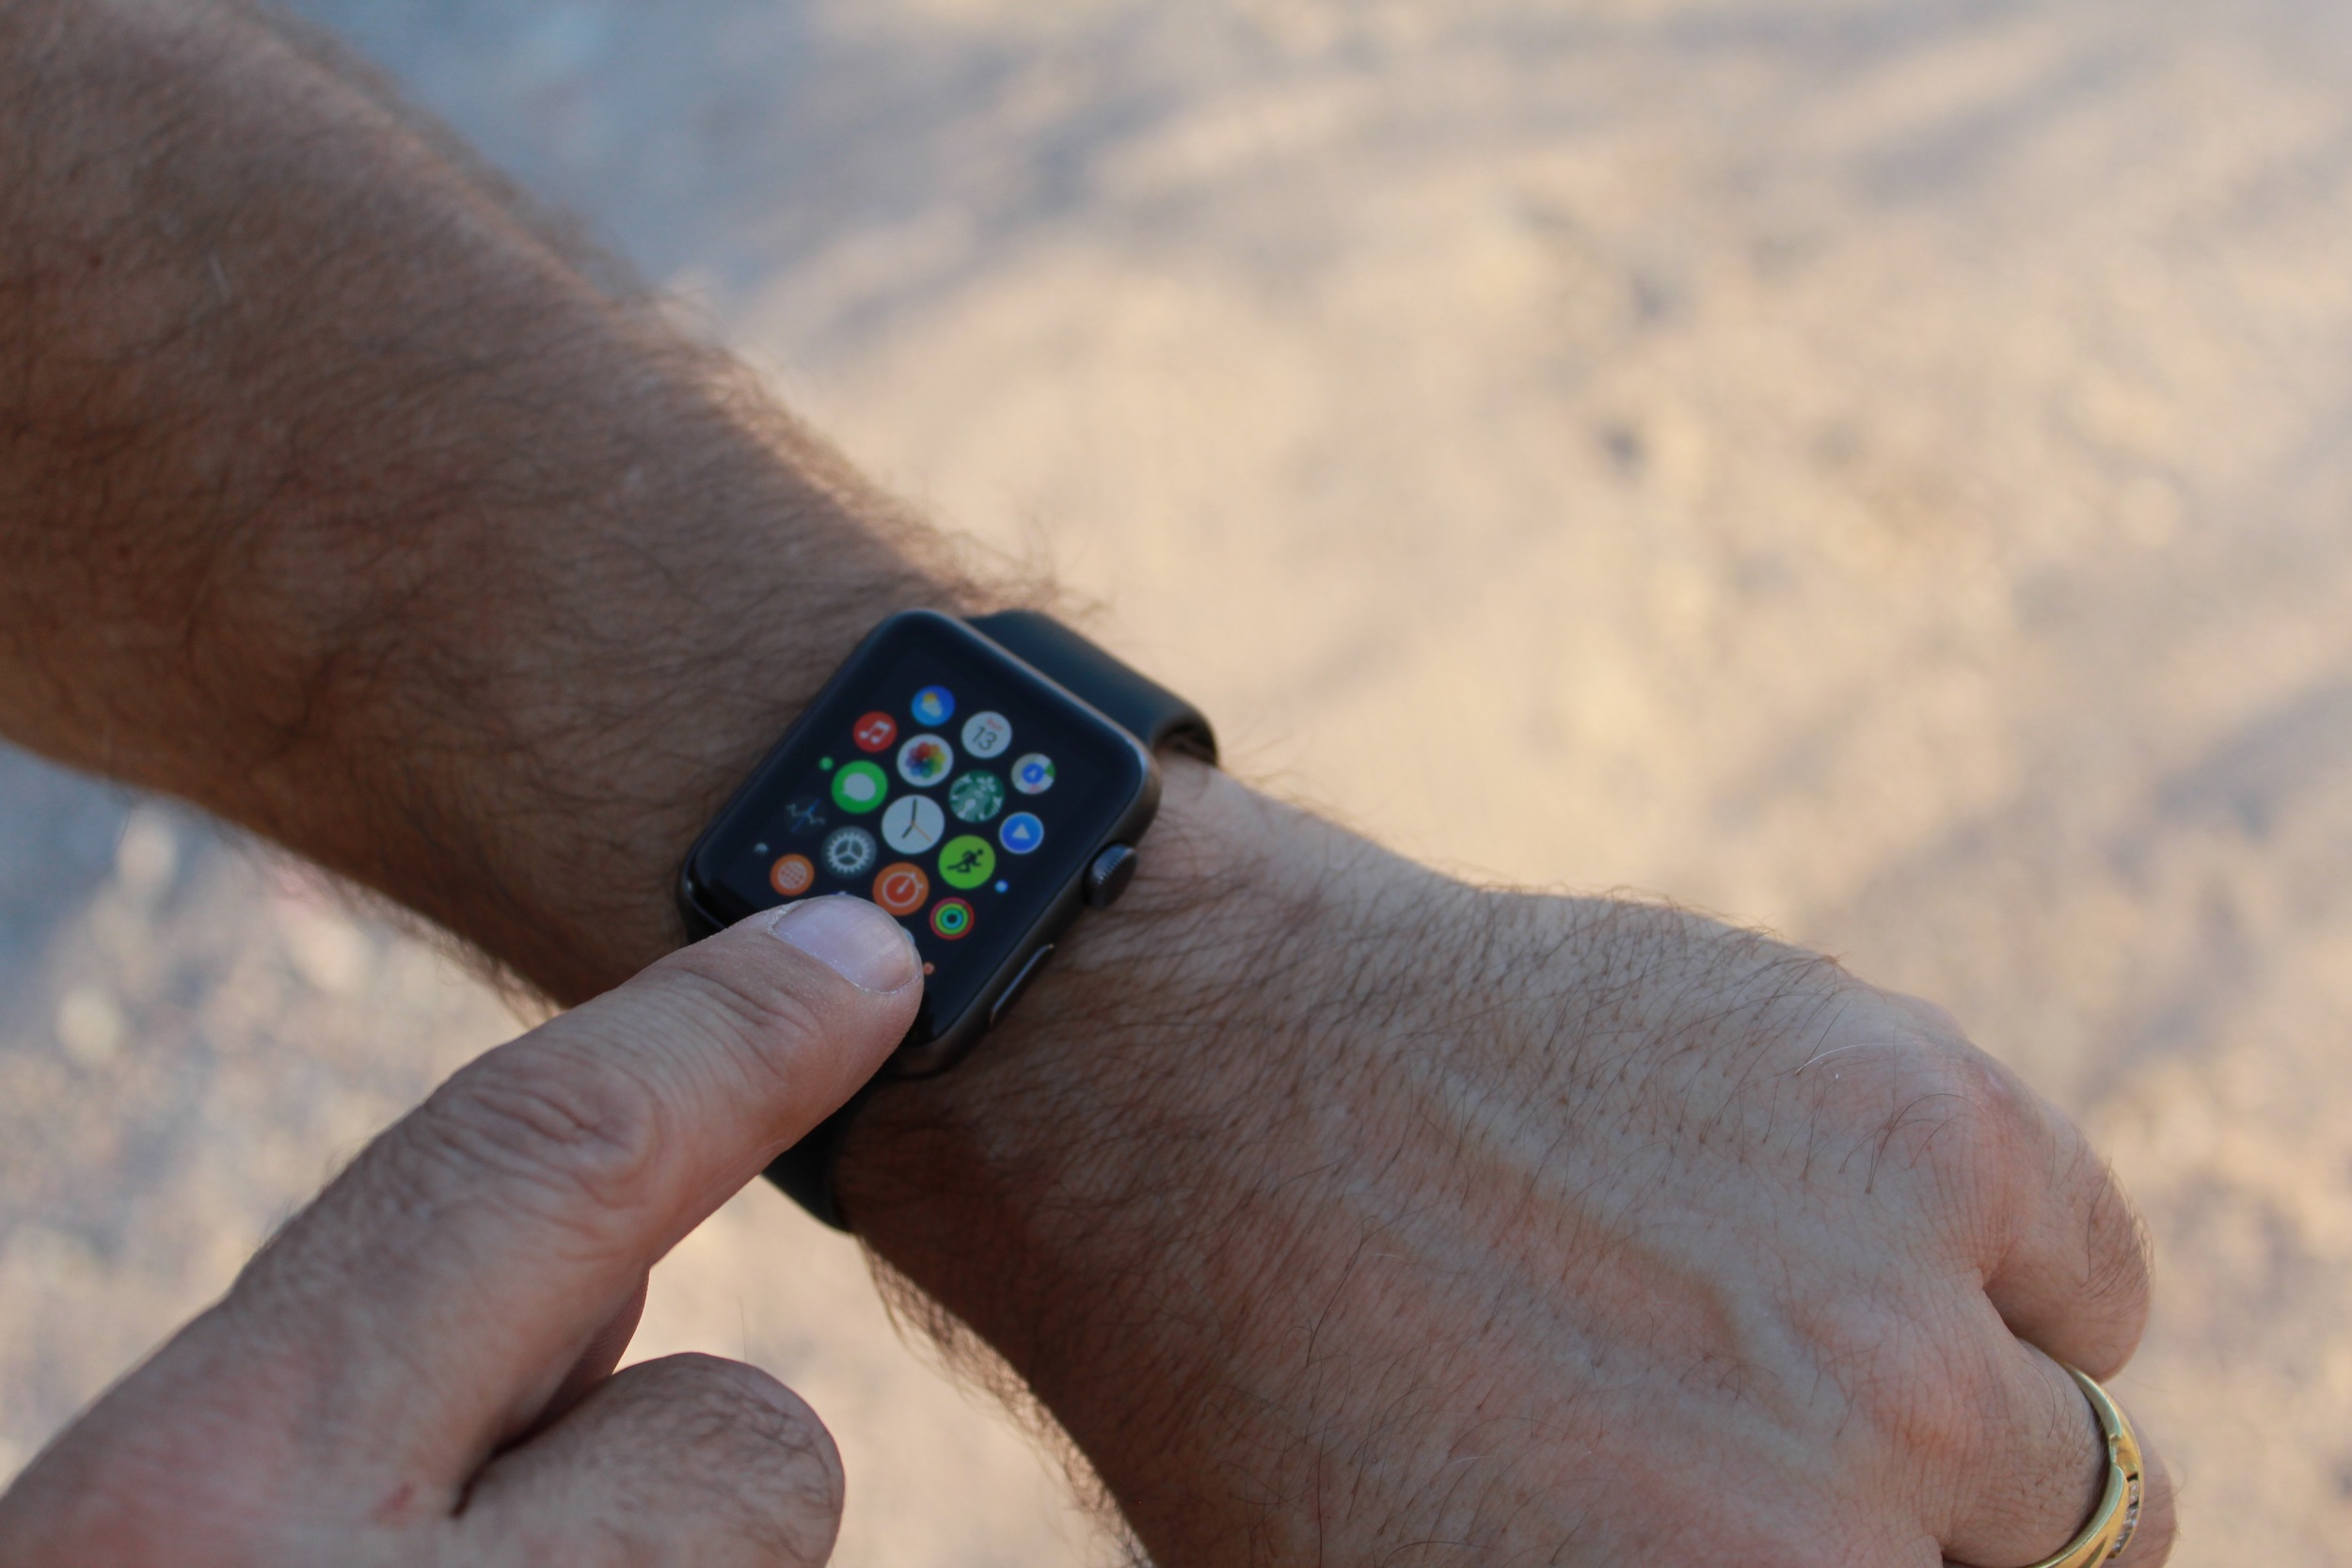 iWatch is a state-of-the art wearable with multi-function ability.